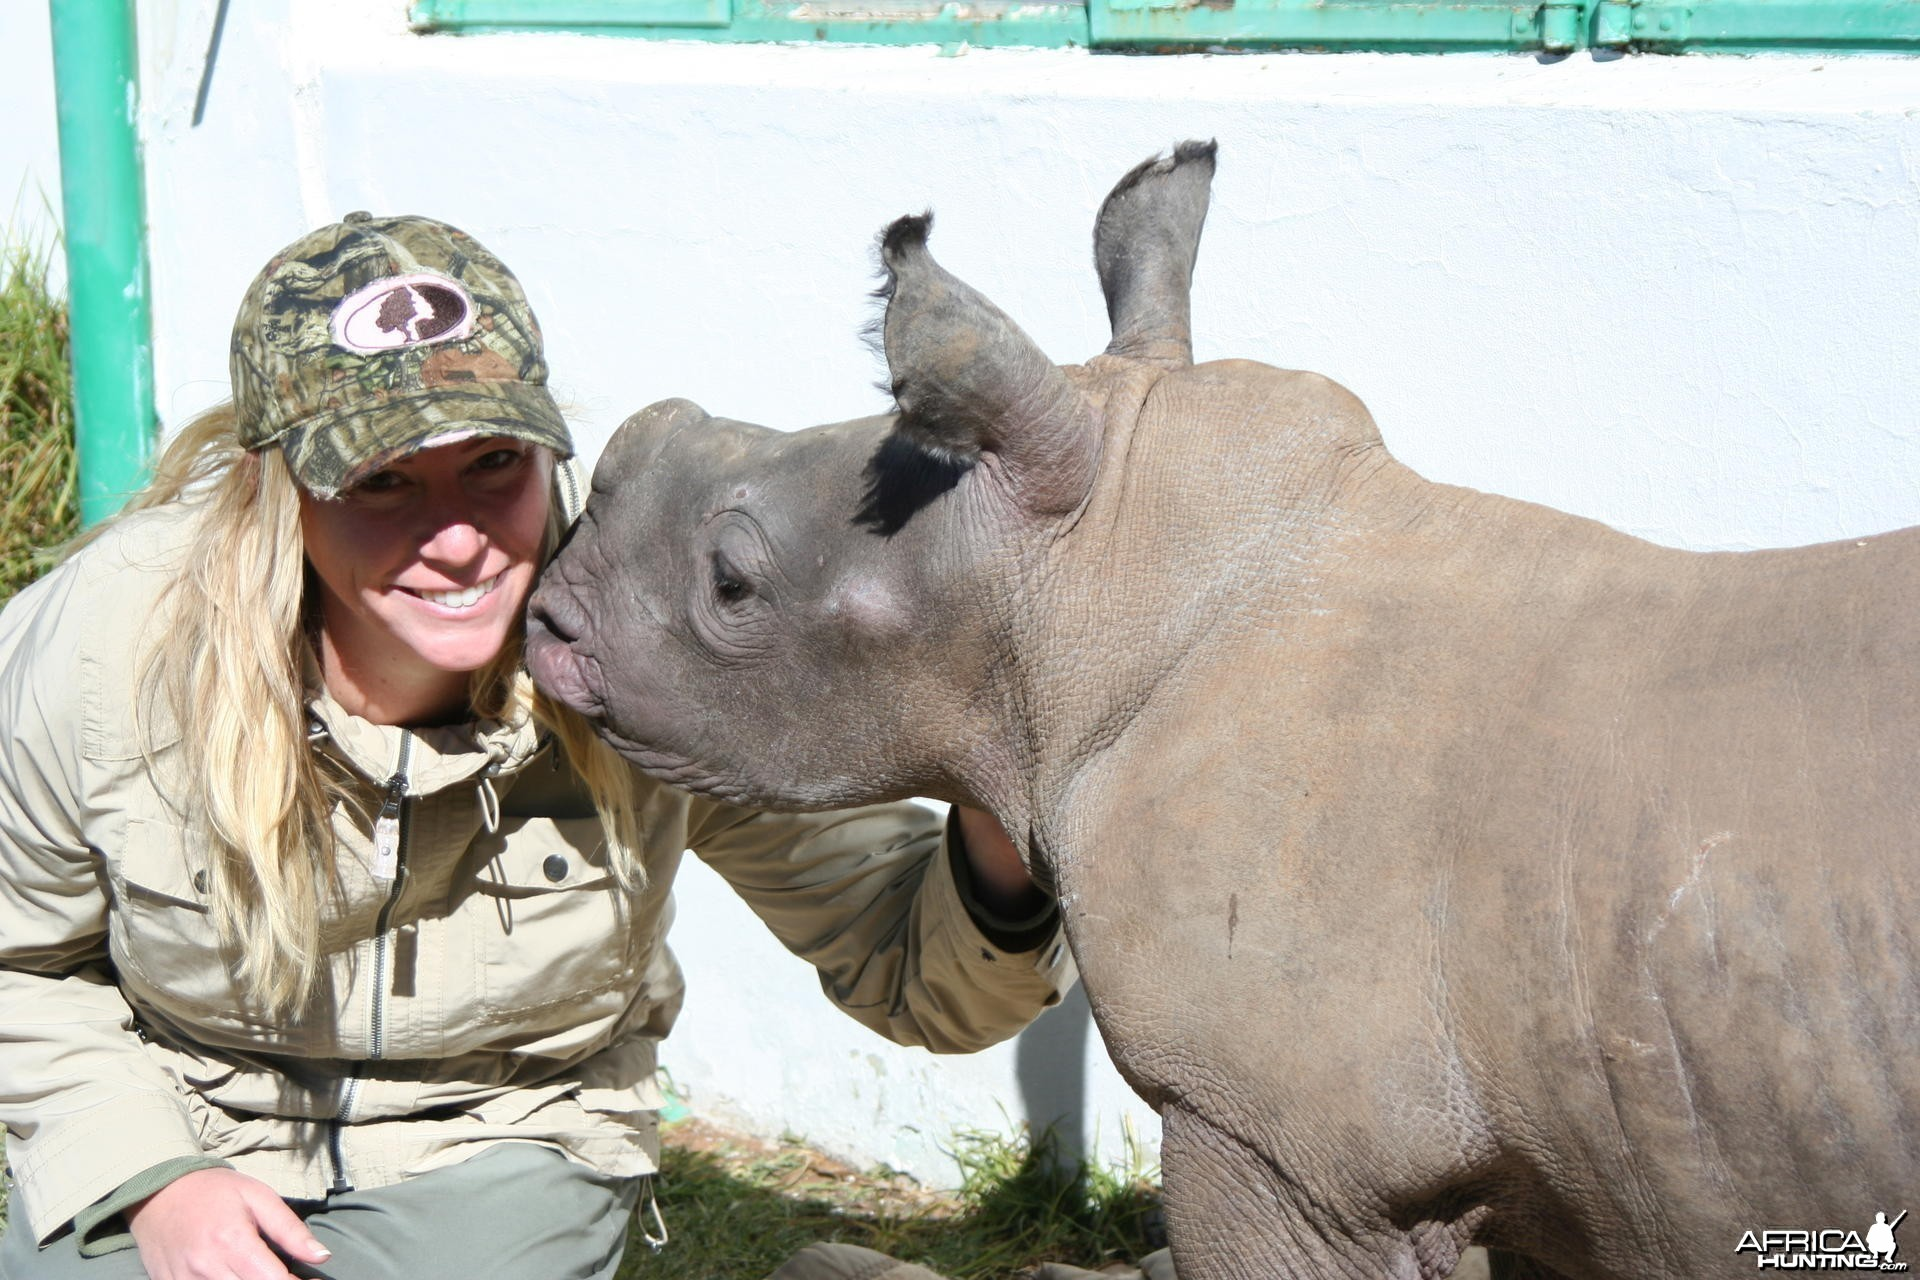 Here is a picture of my wife and the baby rhino on the farm